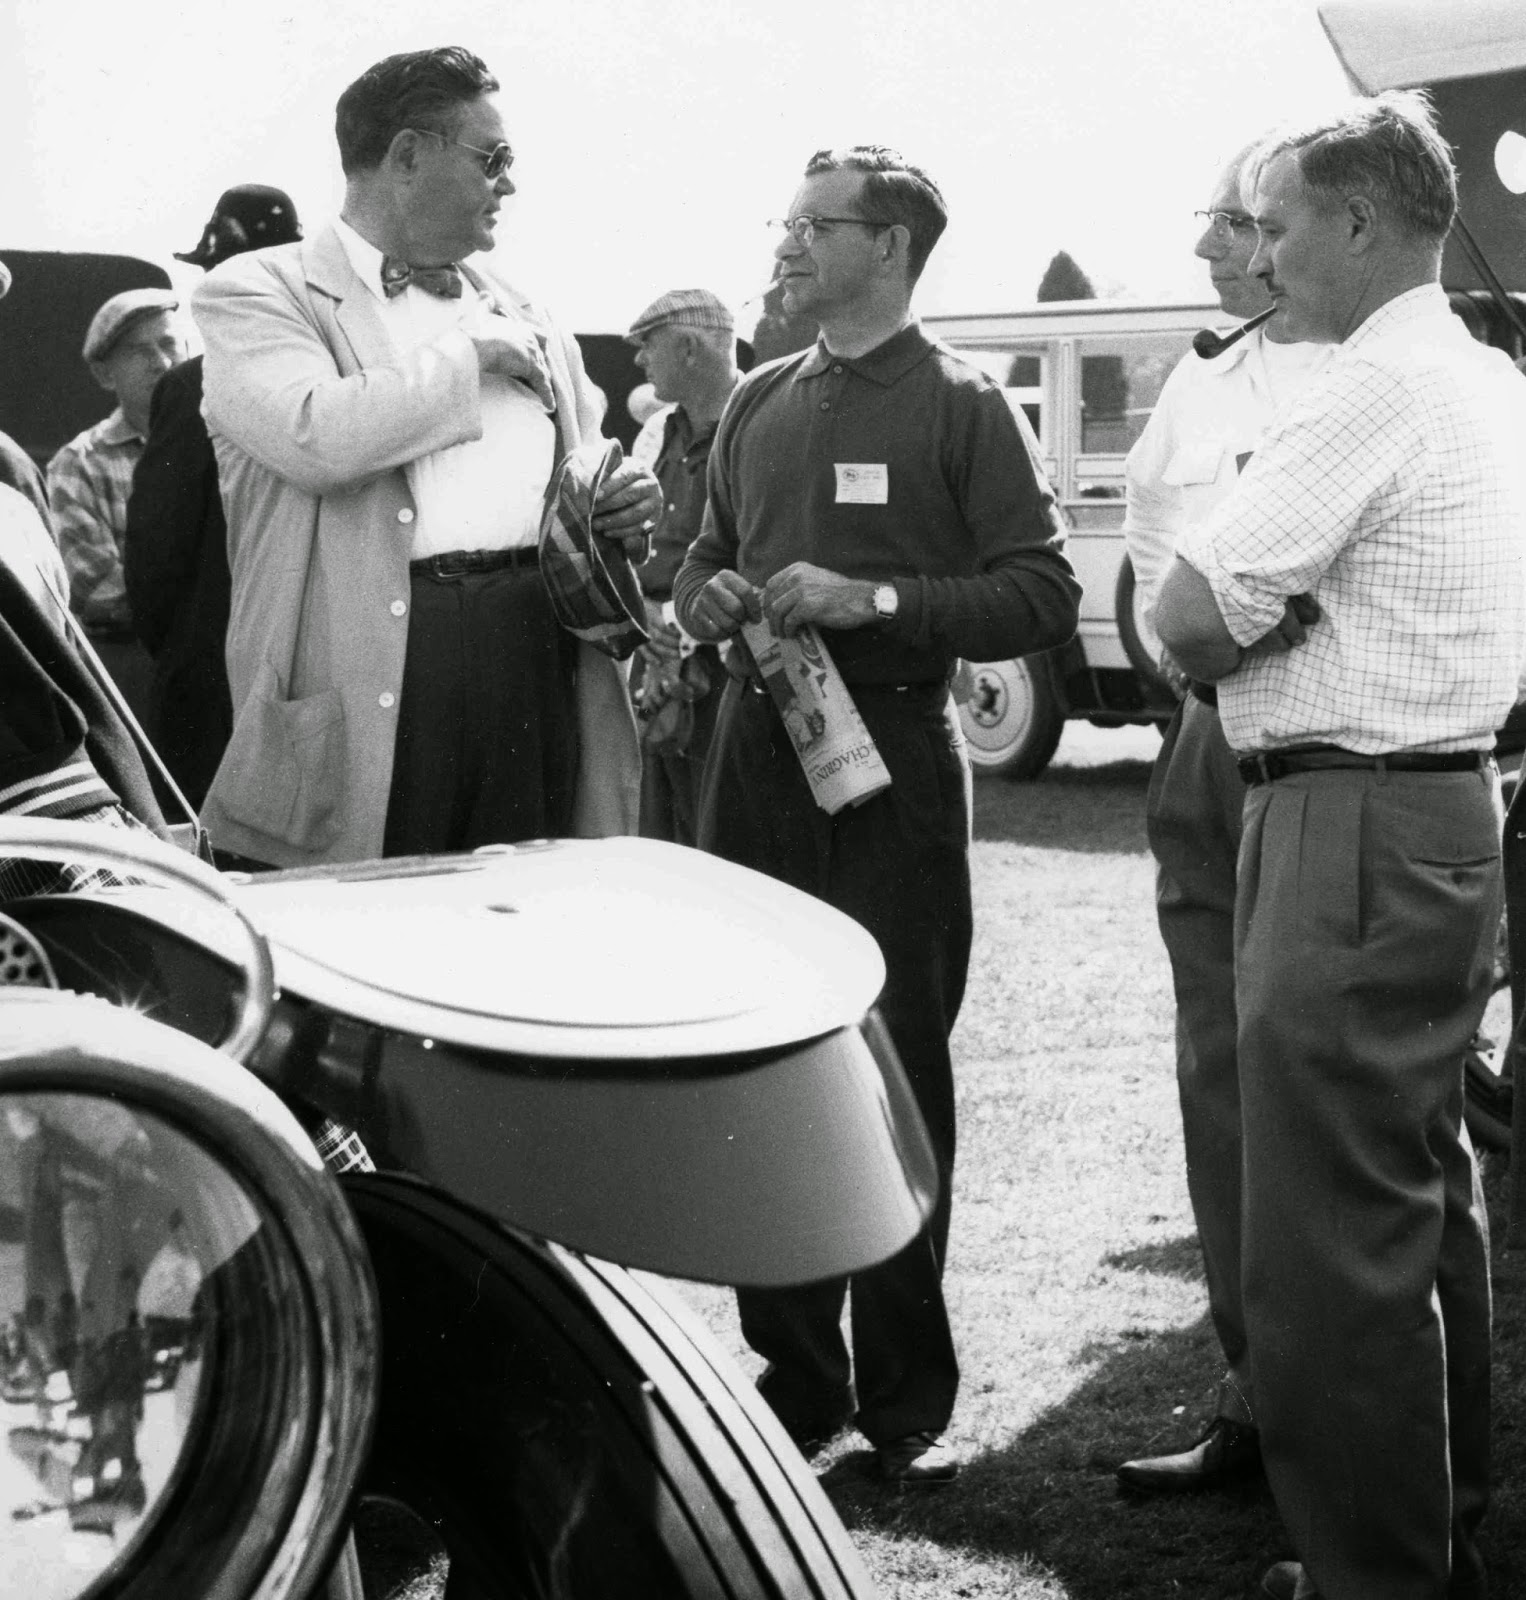 James Melton (left) at the Hershey Meet in 1958 beside a 1910 Thomas Flyer